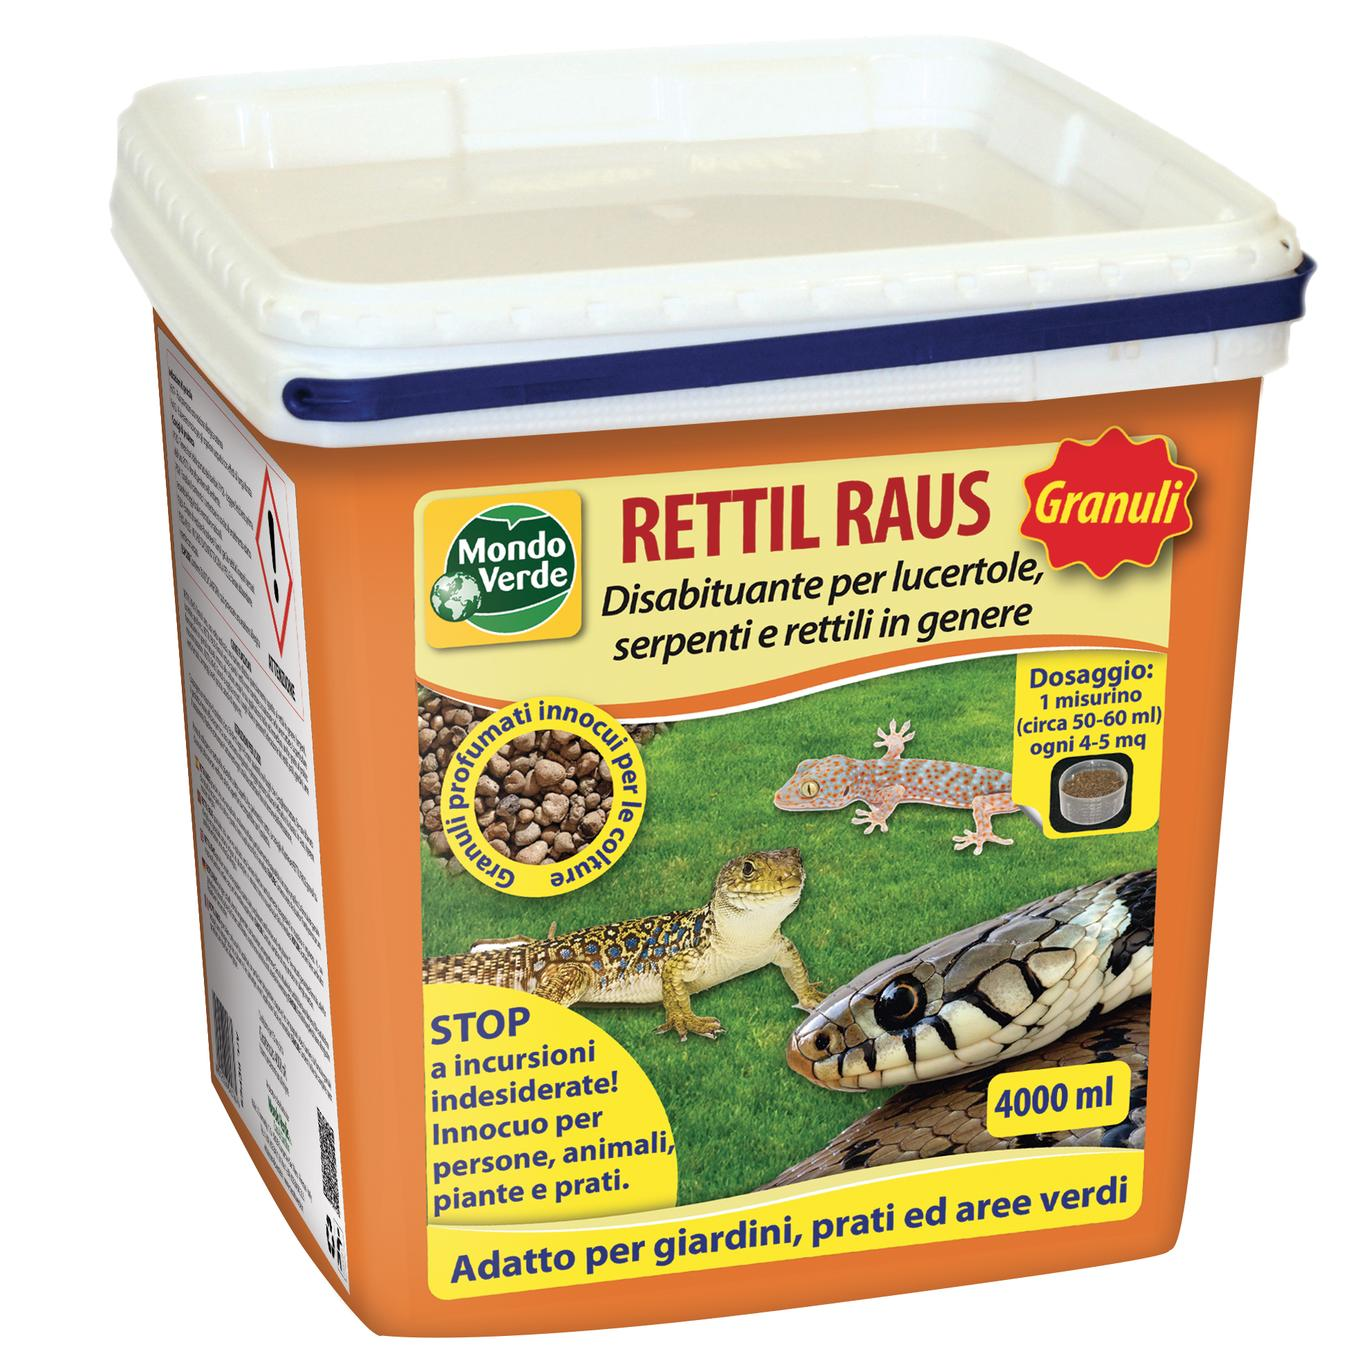 Rettil RAUS repellente-disabituante per serpenti lucertole e rettili in genere 4000ml